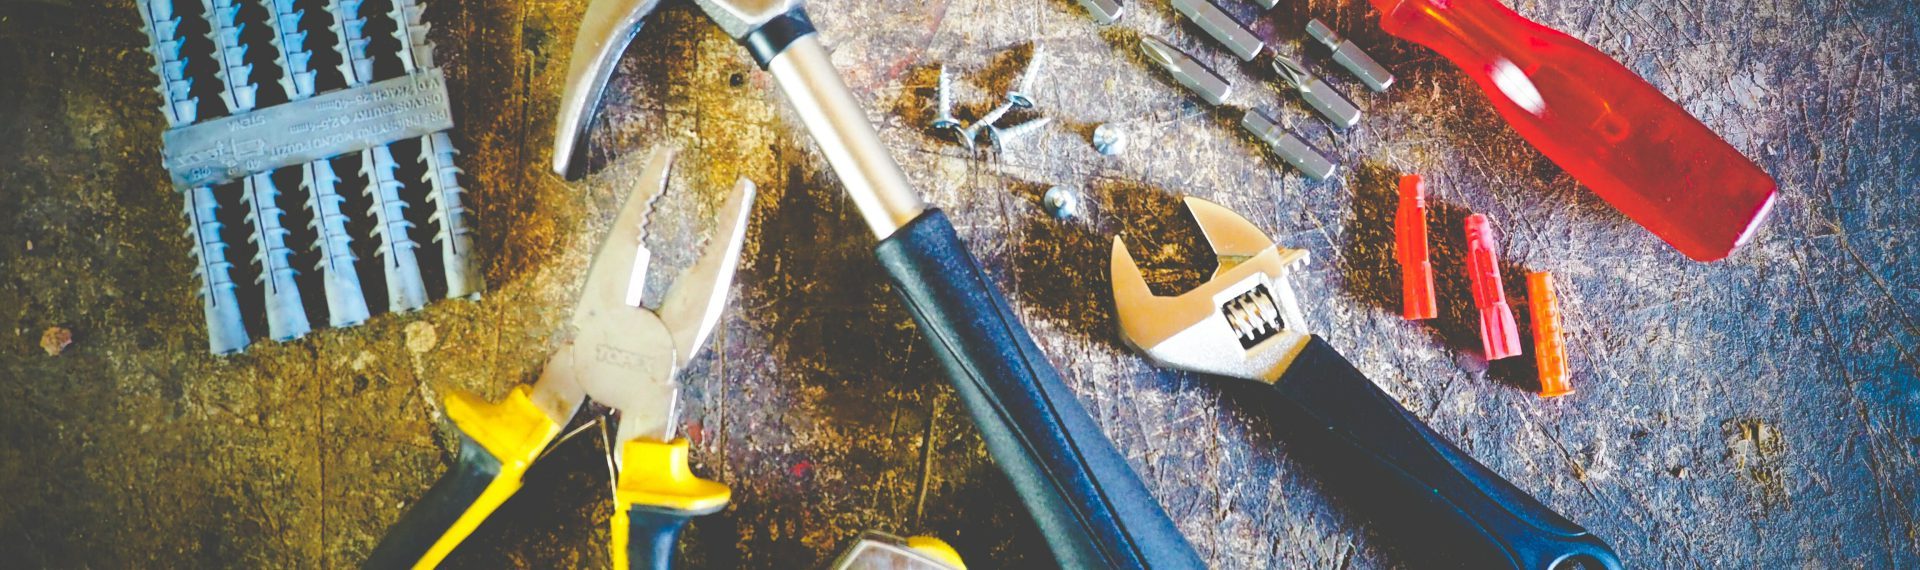 What if your work tools fall into the wrong hands?